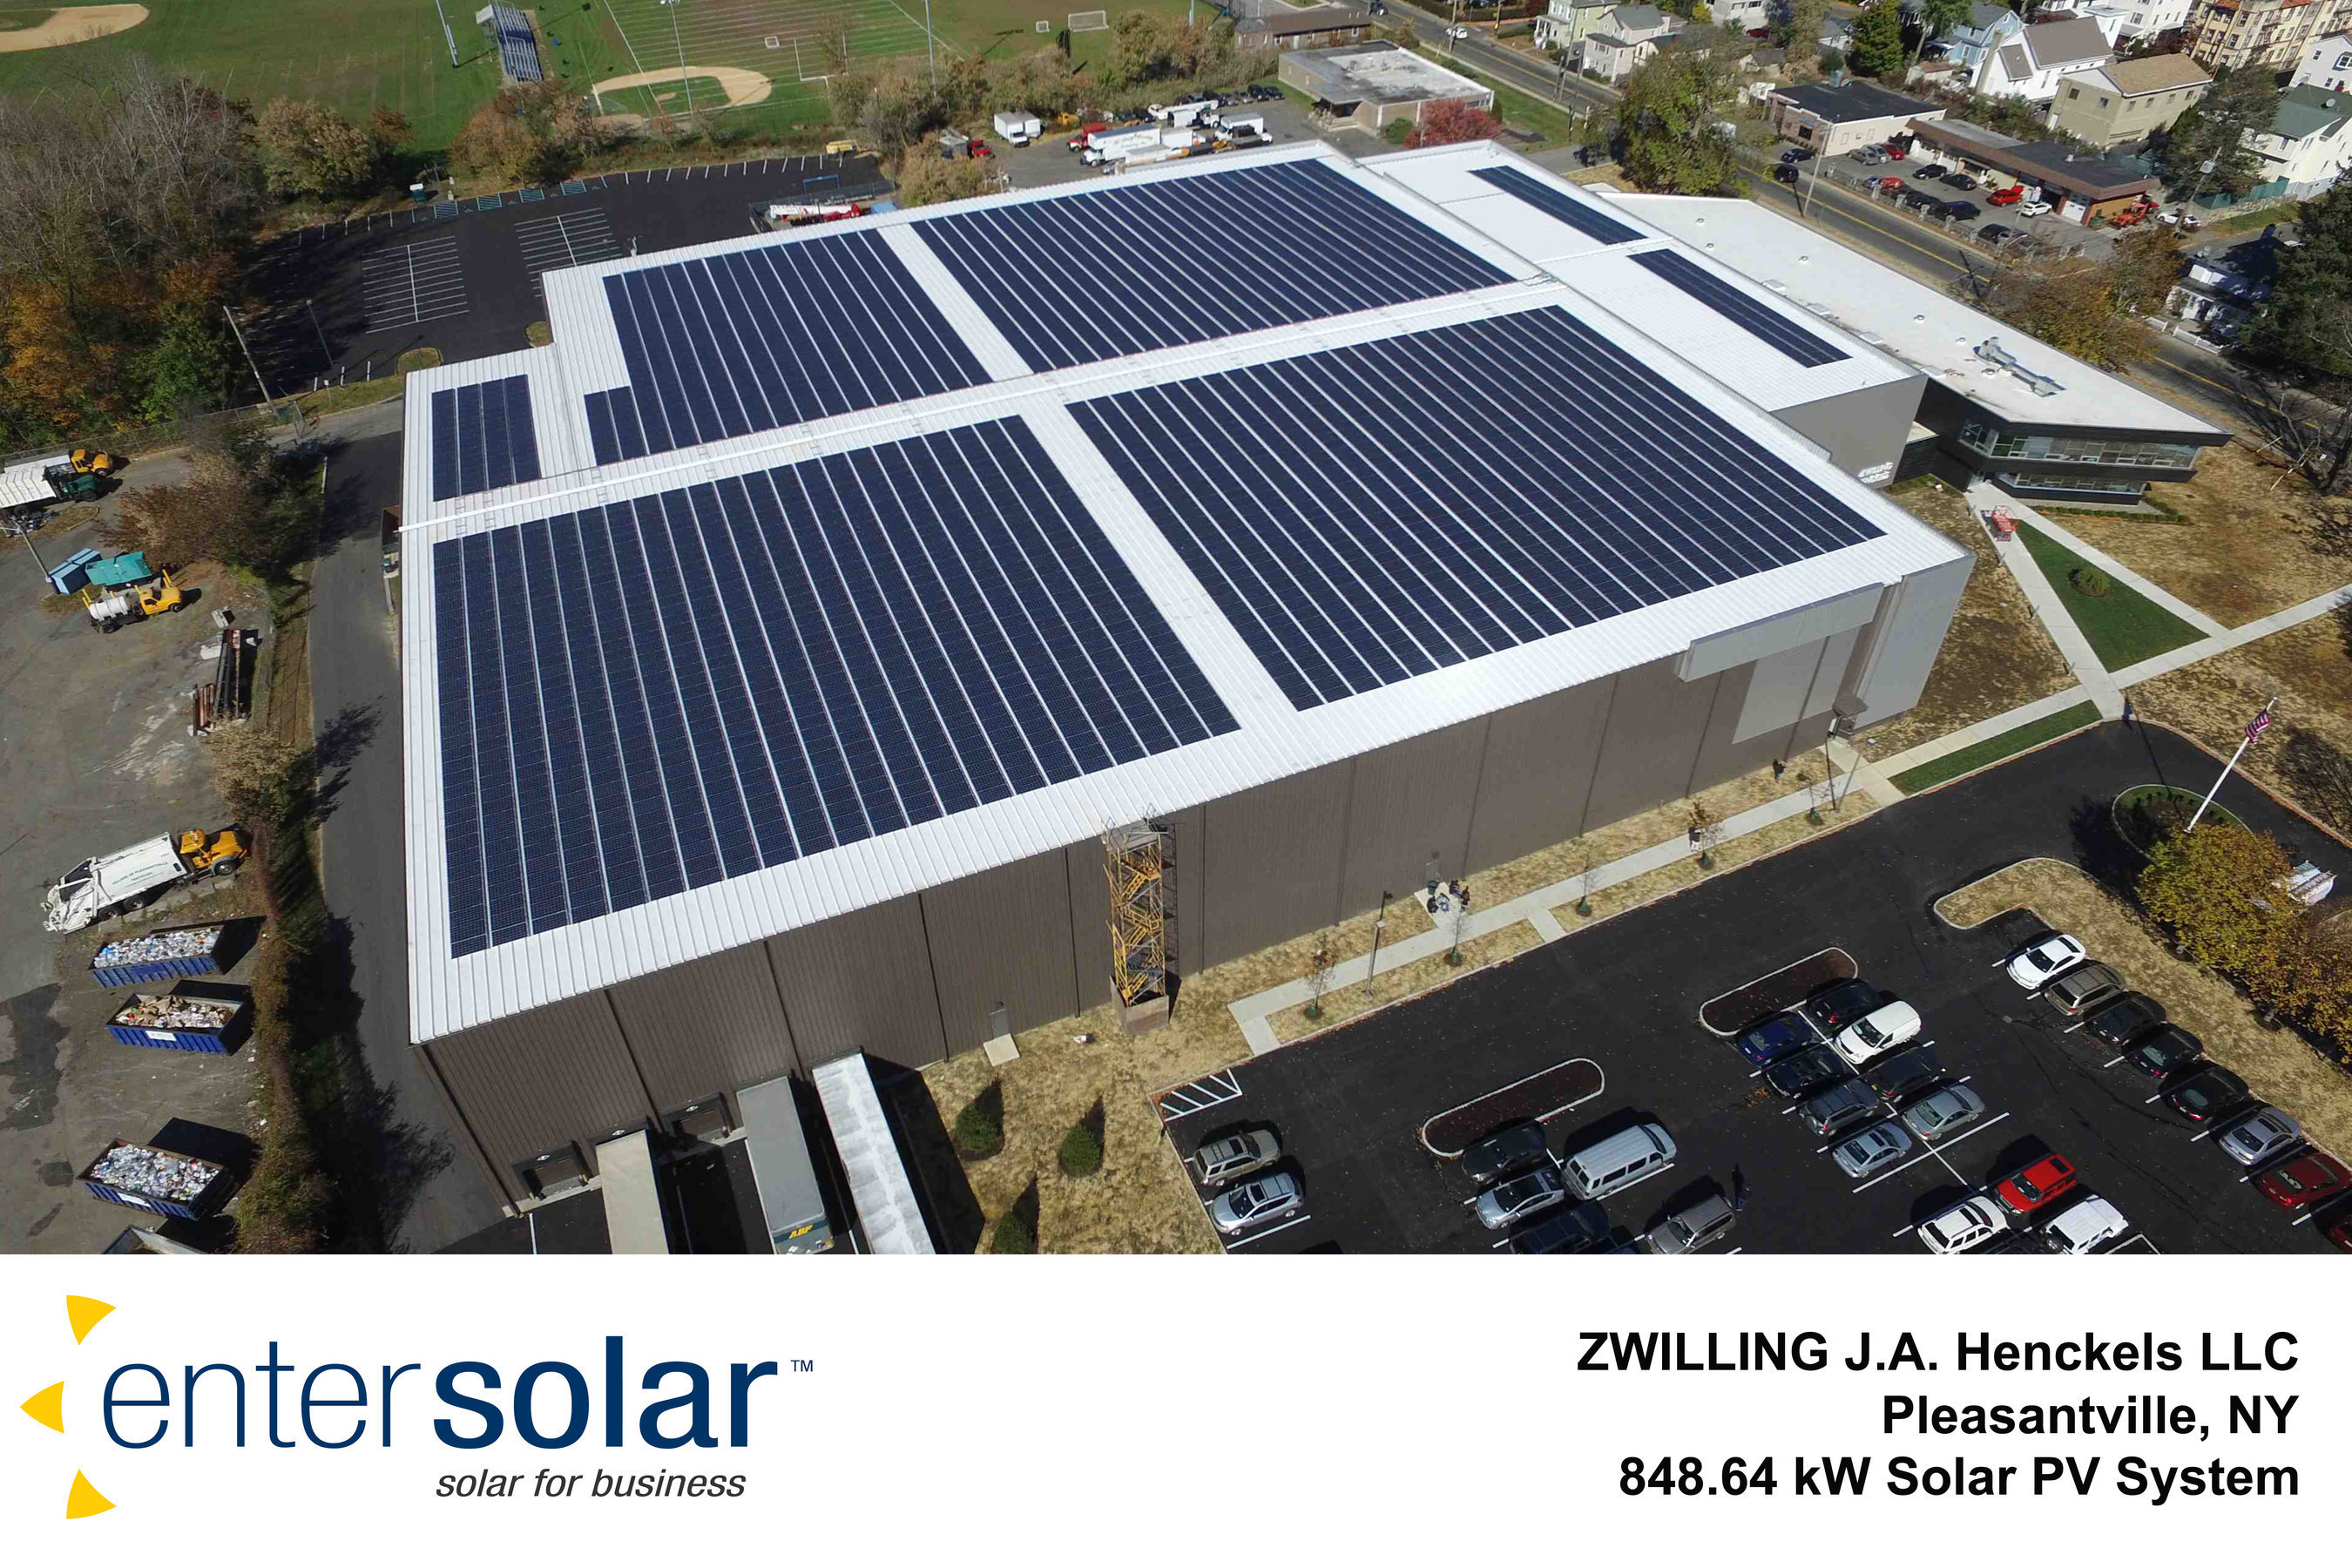 ZWILLING J.A. Henckels Announces The Launch Of Rooftop Solar Project For US Headquarters